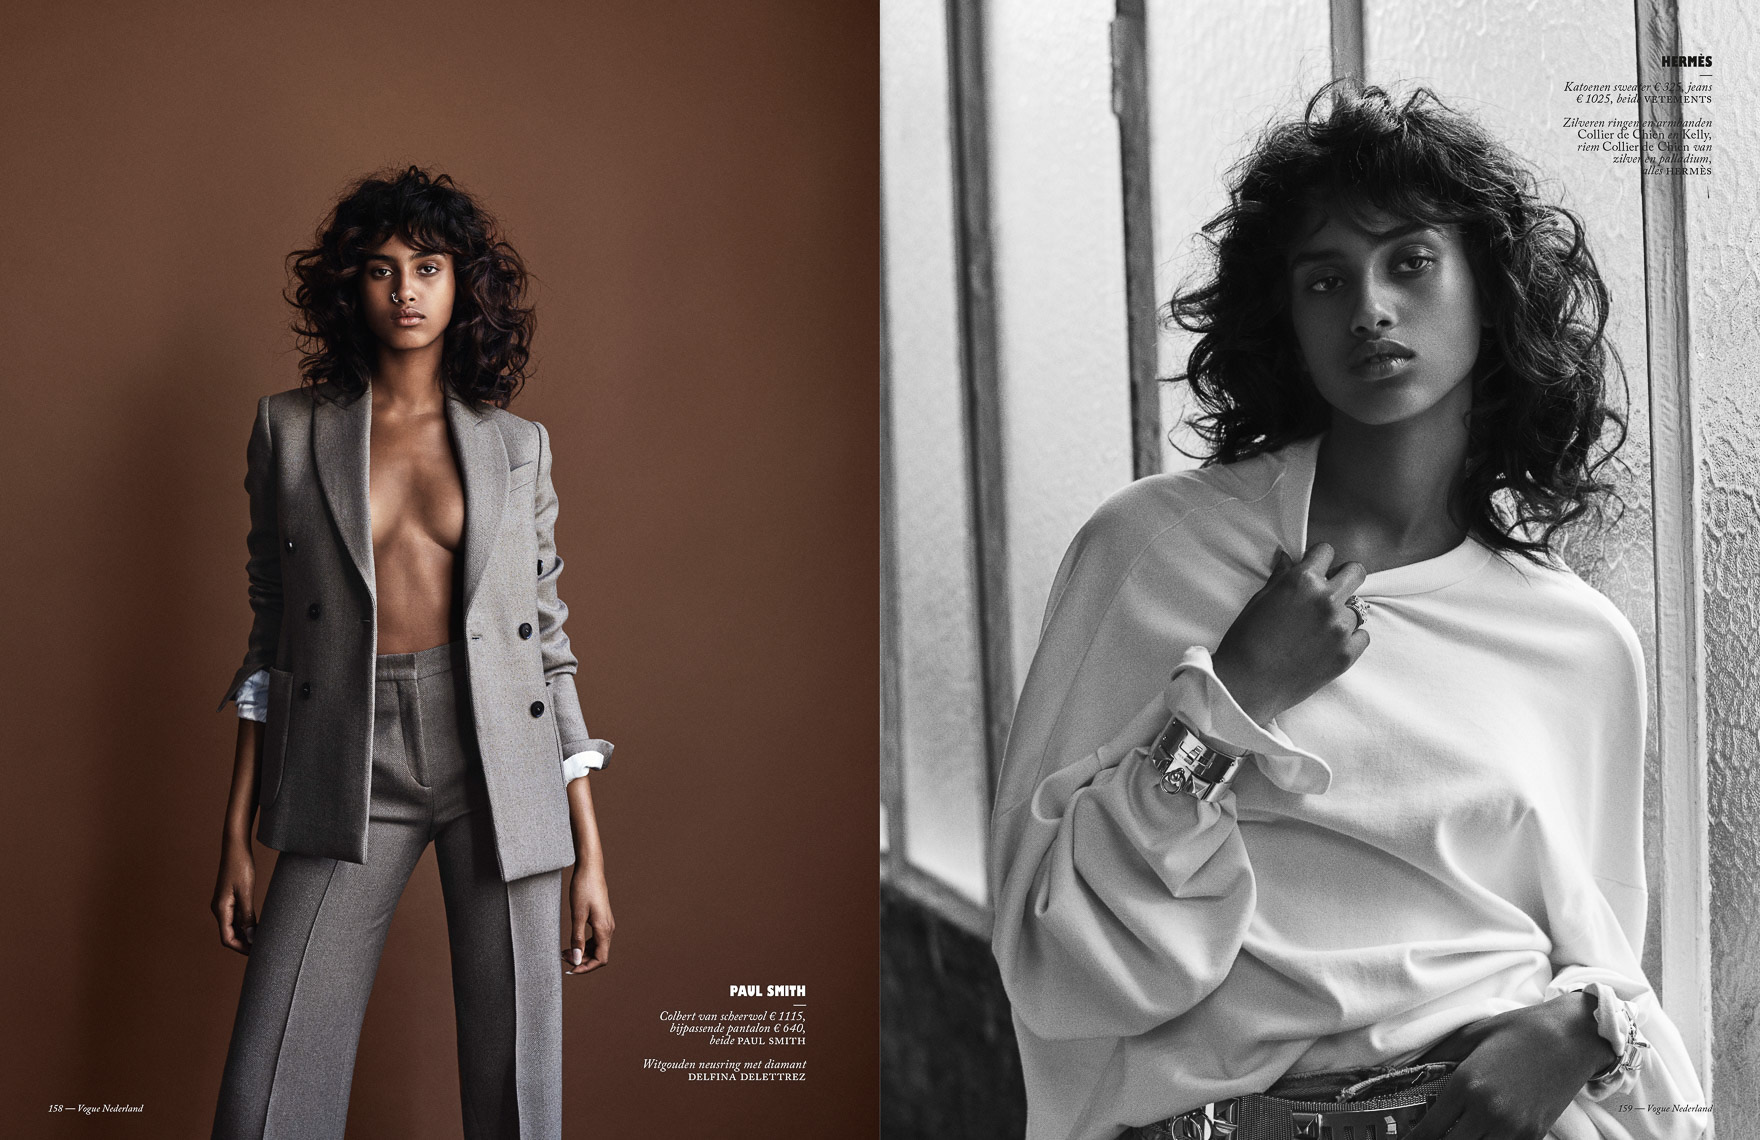 Witman Kleipool | Marc de Groot | Imaan for Vogue51